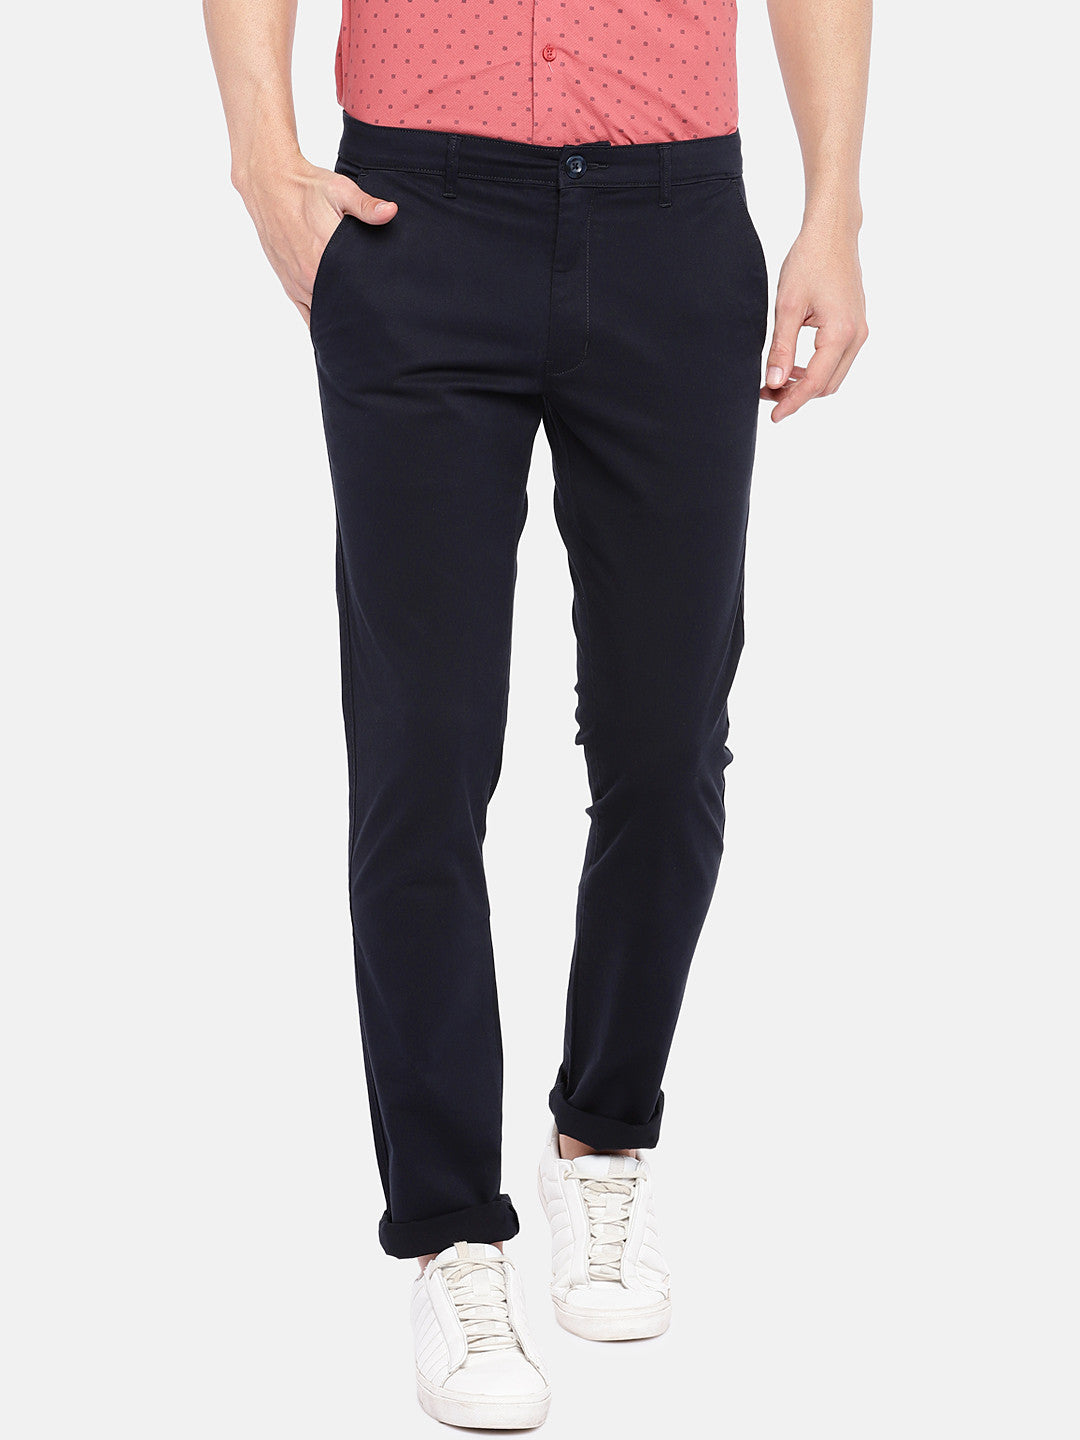 Navy Blue Regular Fit Solid Regular Trousers-1